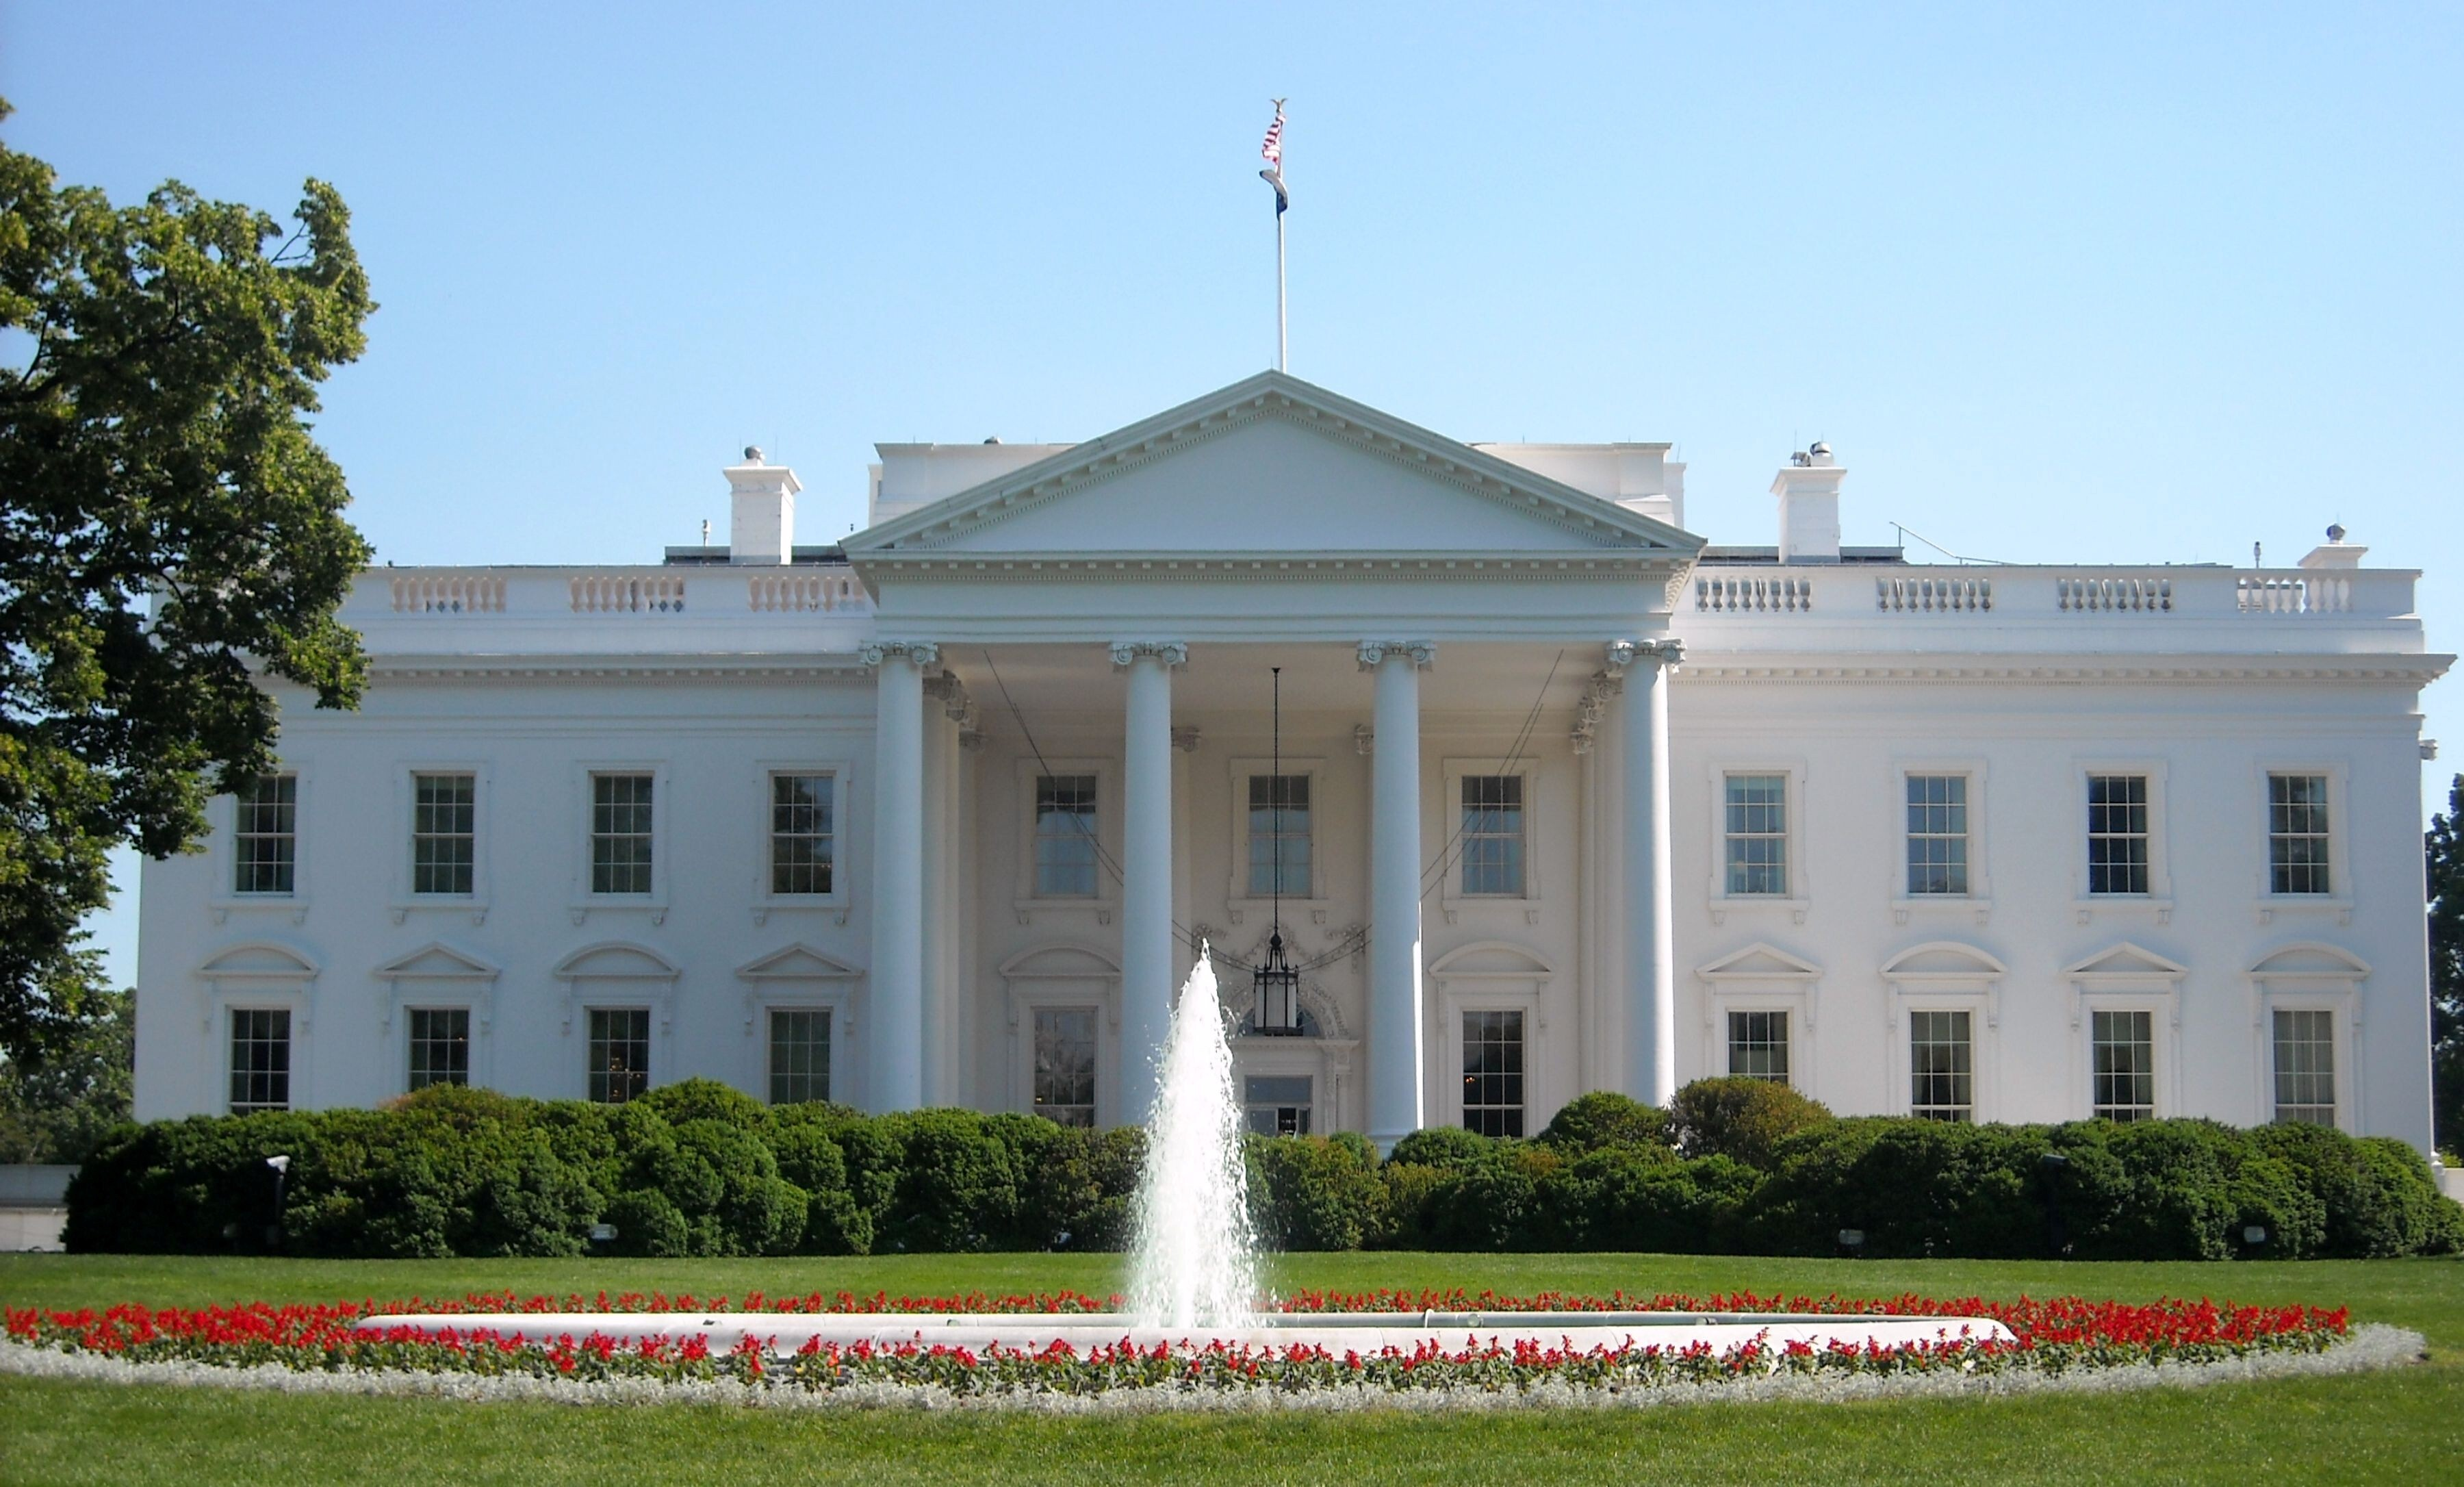 white house united states of america hd wallpaper | hd wallpapers